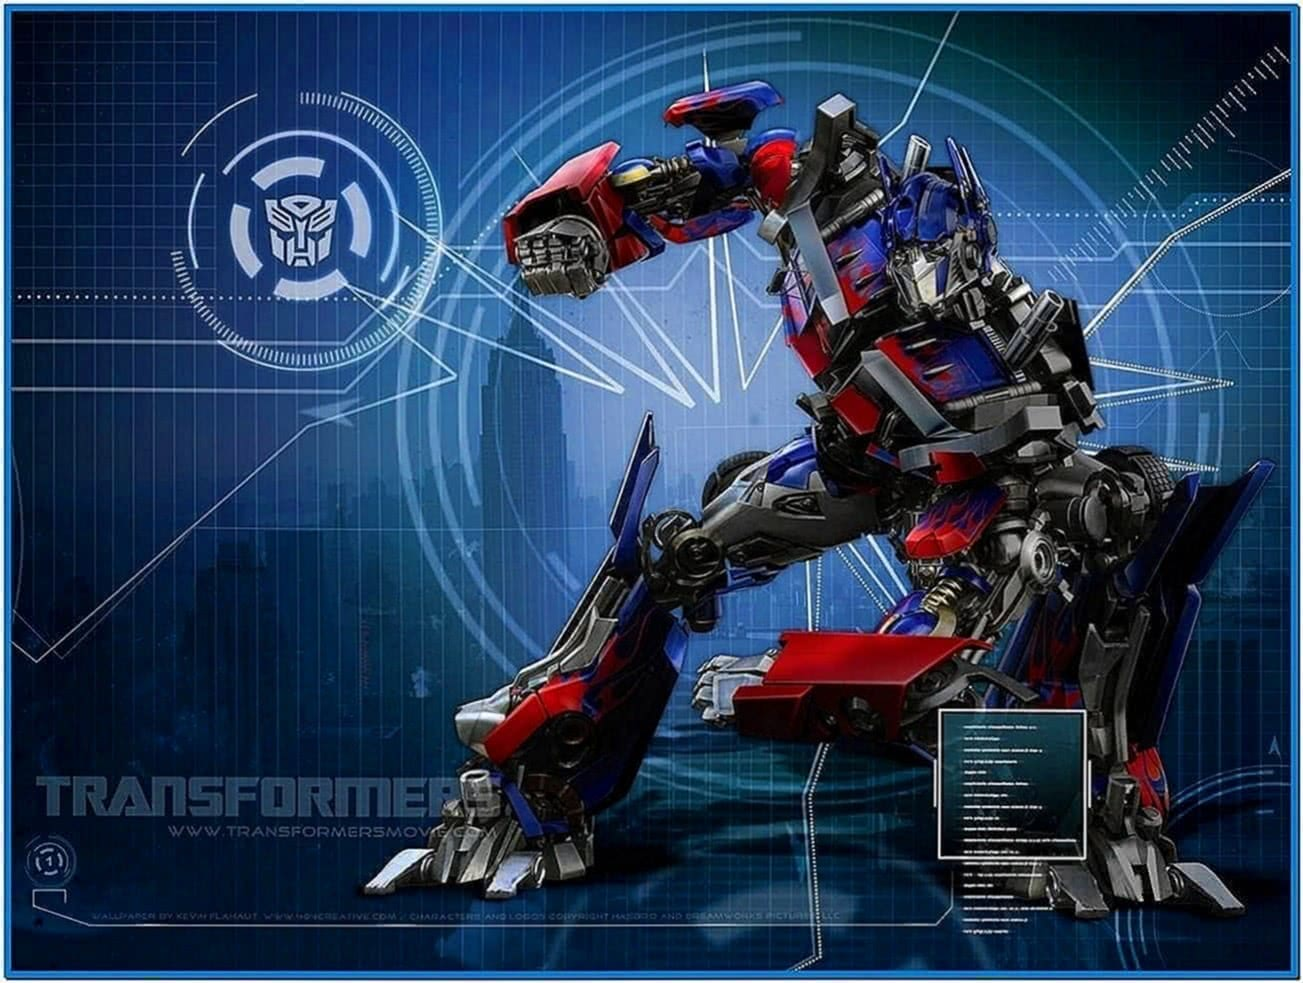 Transformers 3 Screensaver